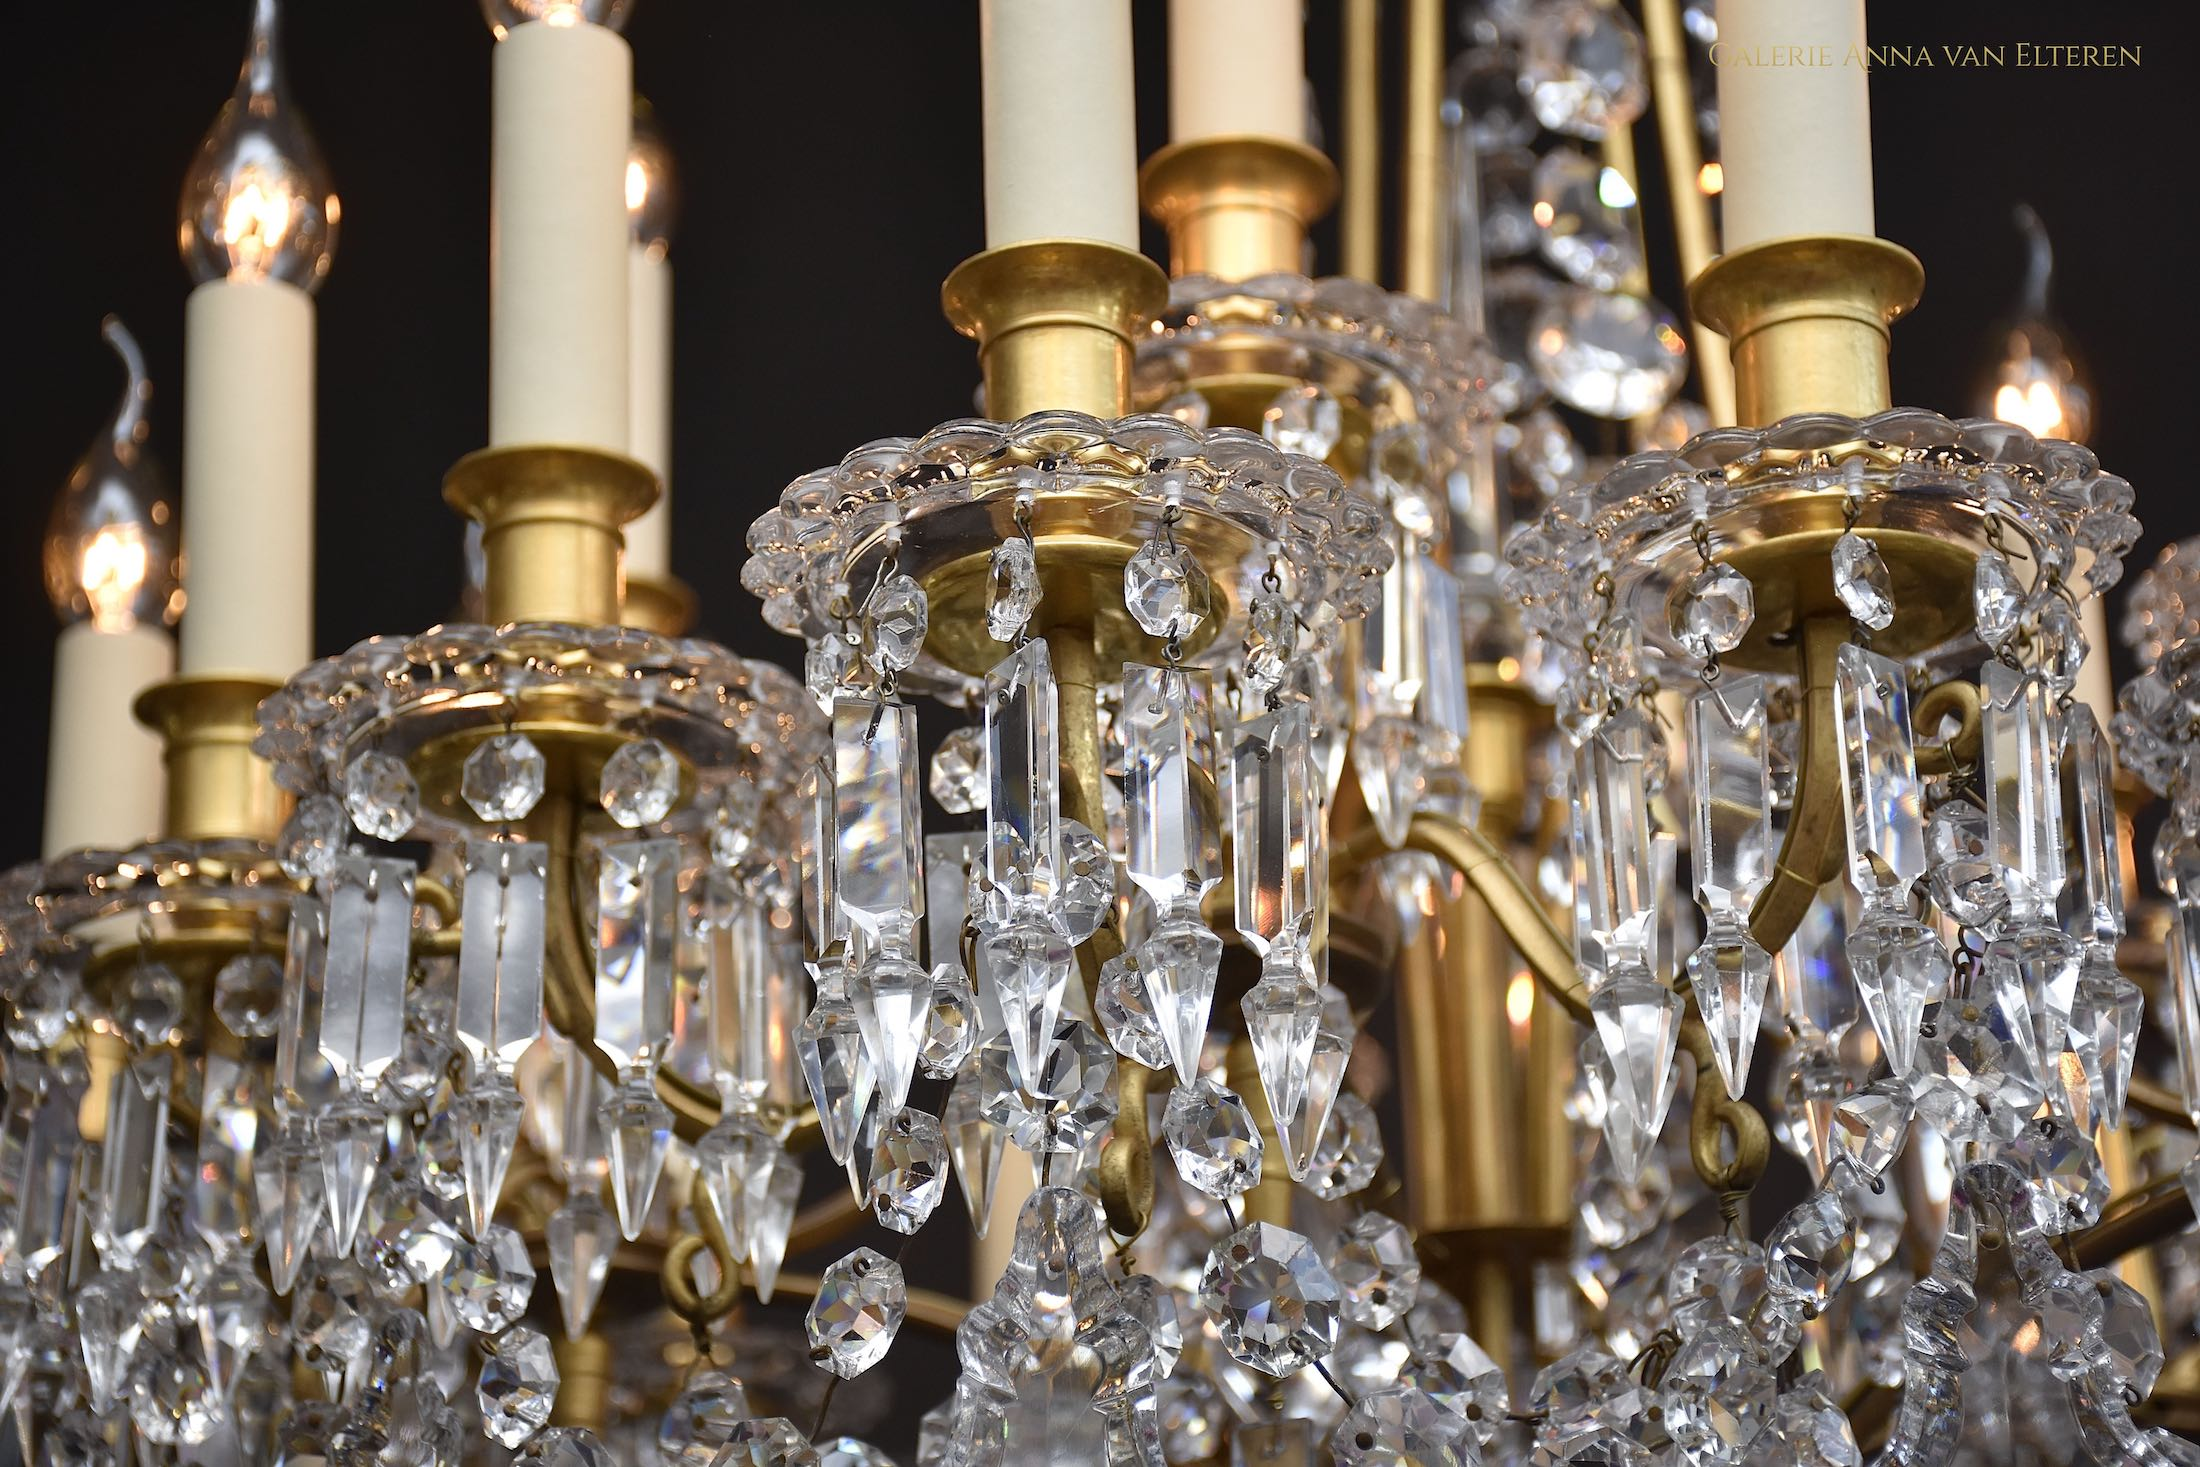 Antique French gilt bronze & crystal Louis XVI style Baccarat chandelier